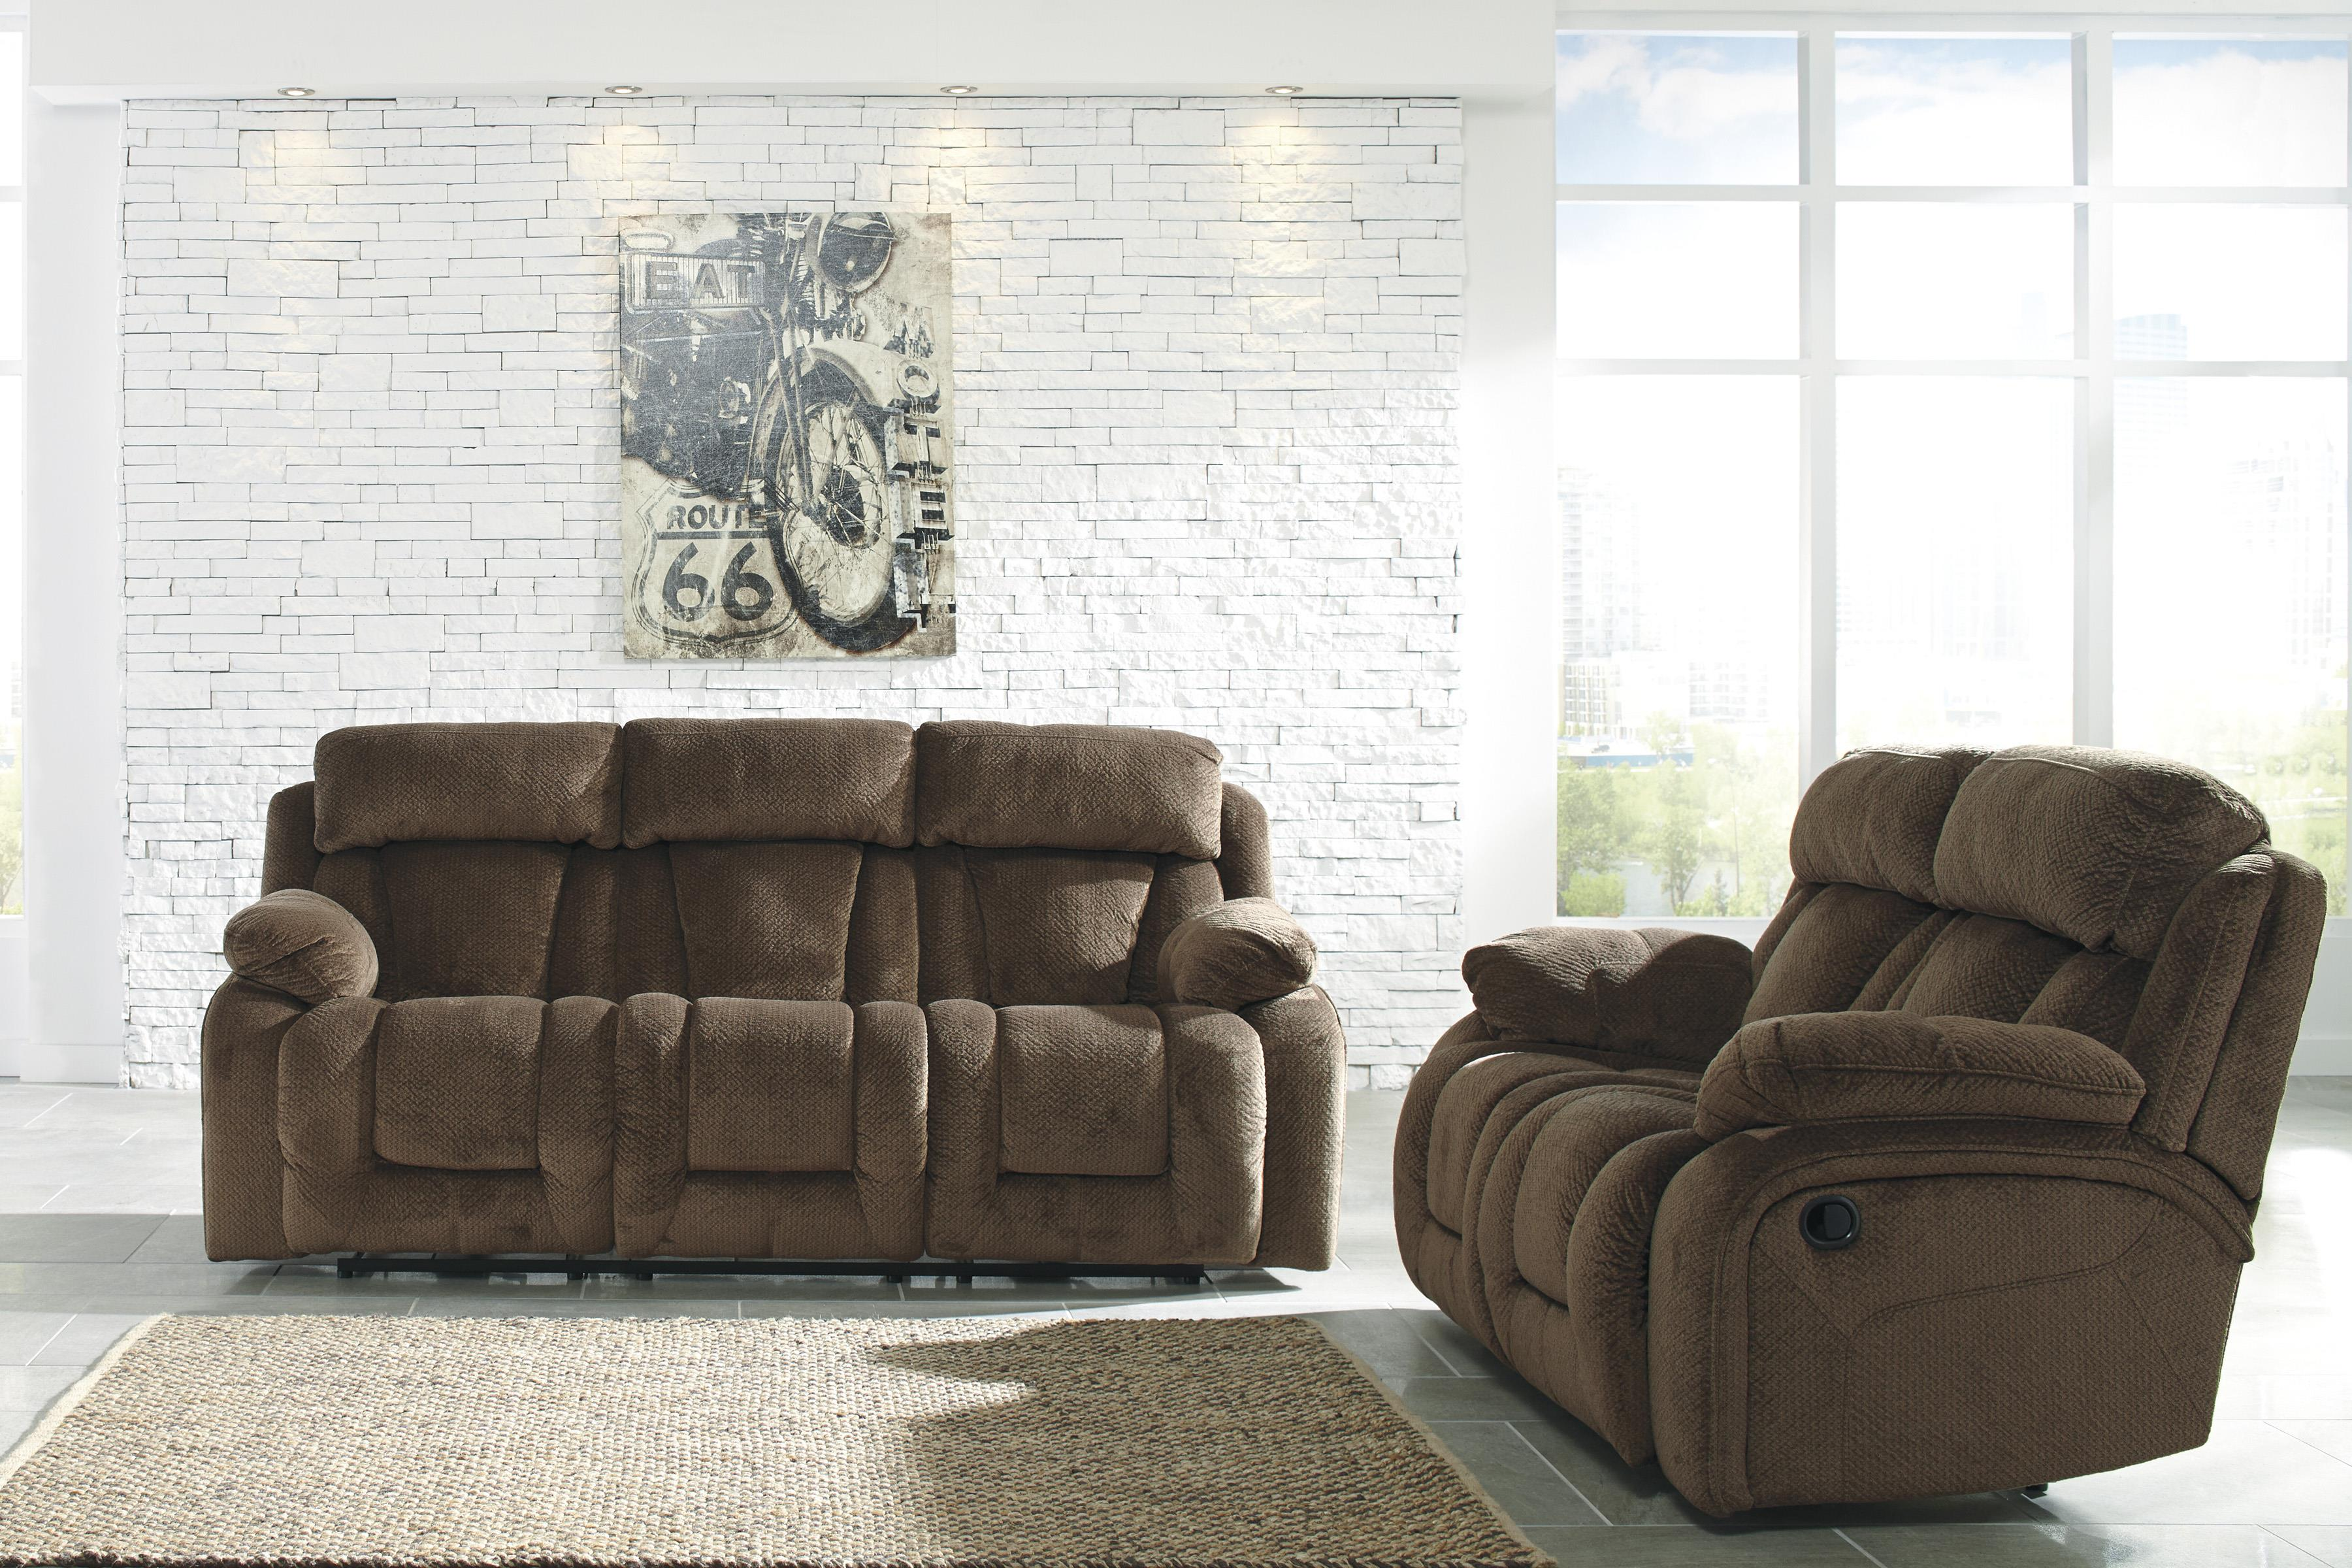 Signature Design by Ashley Stricklin Reclining Living Room Group - Item Number: 86503 Living Room Group 2